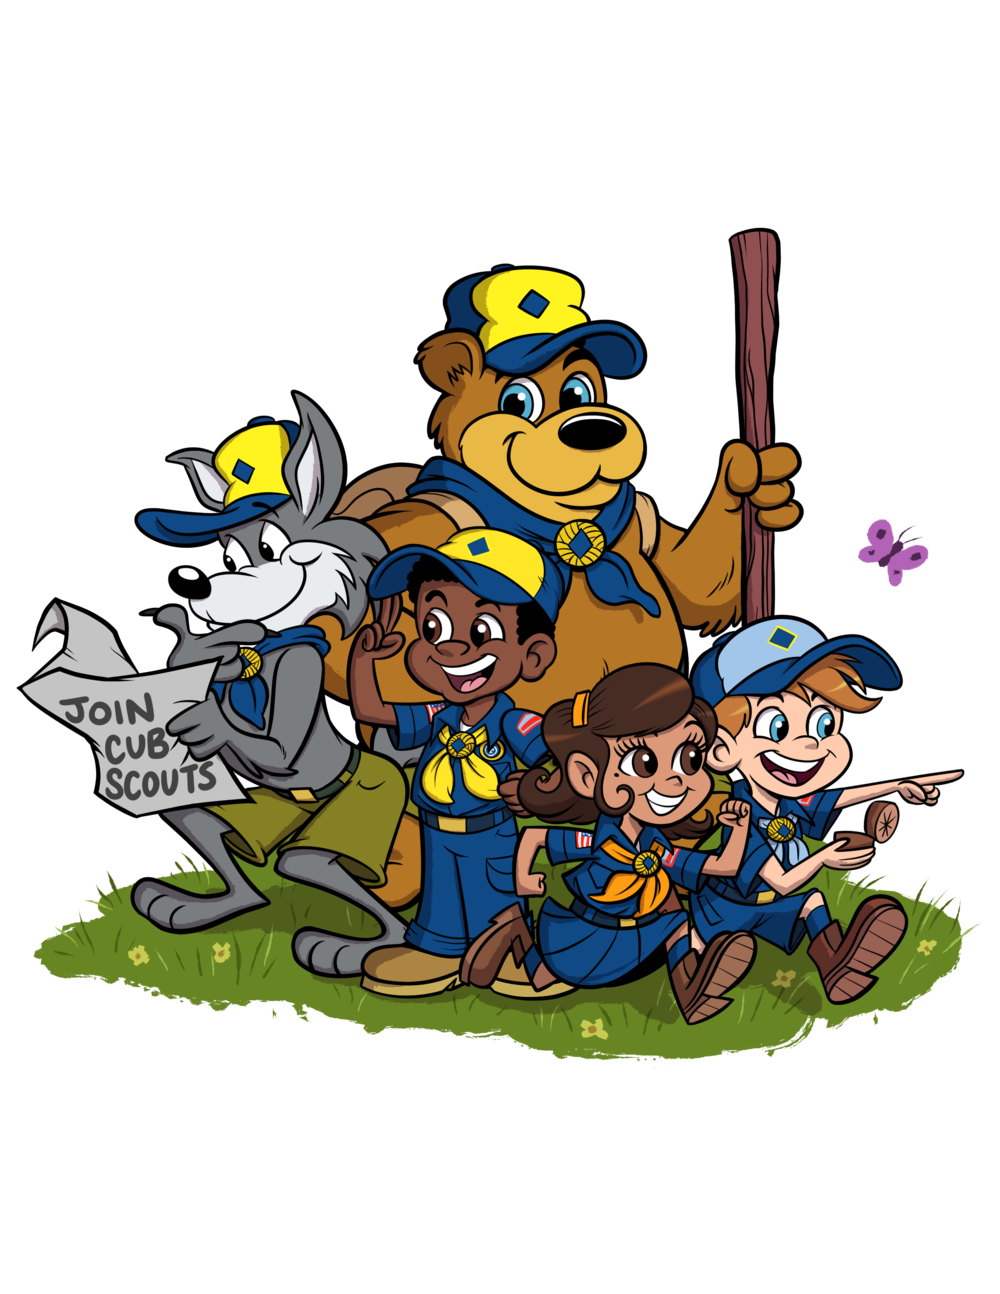 cub_scouts_recruiting_poster.png